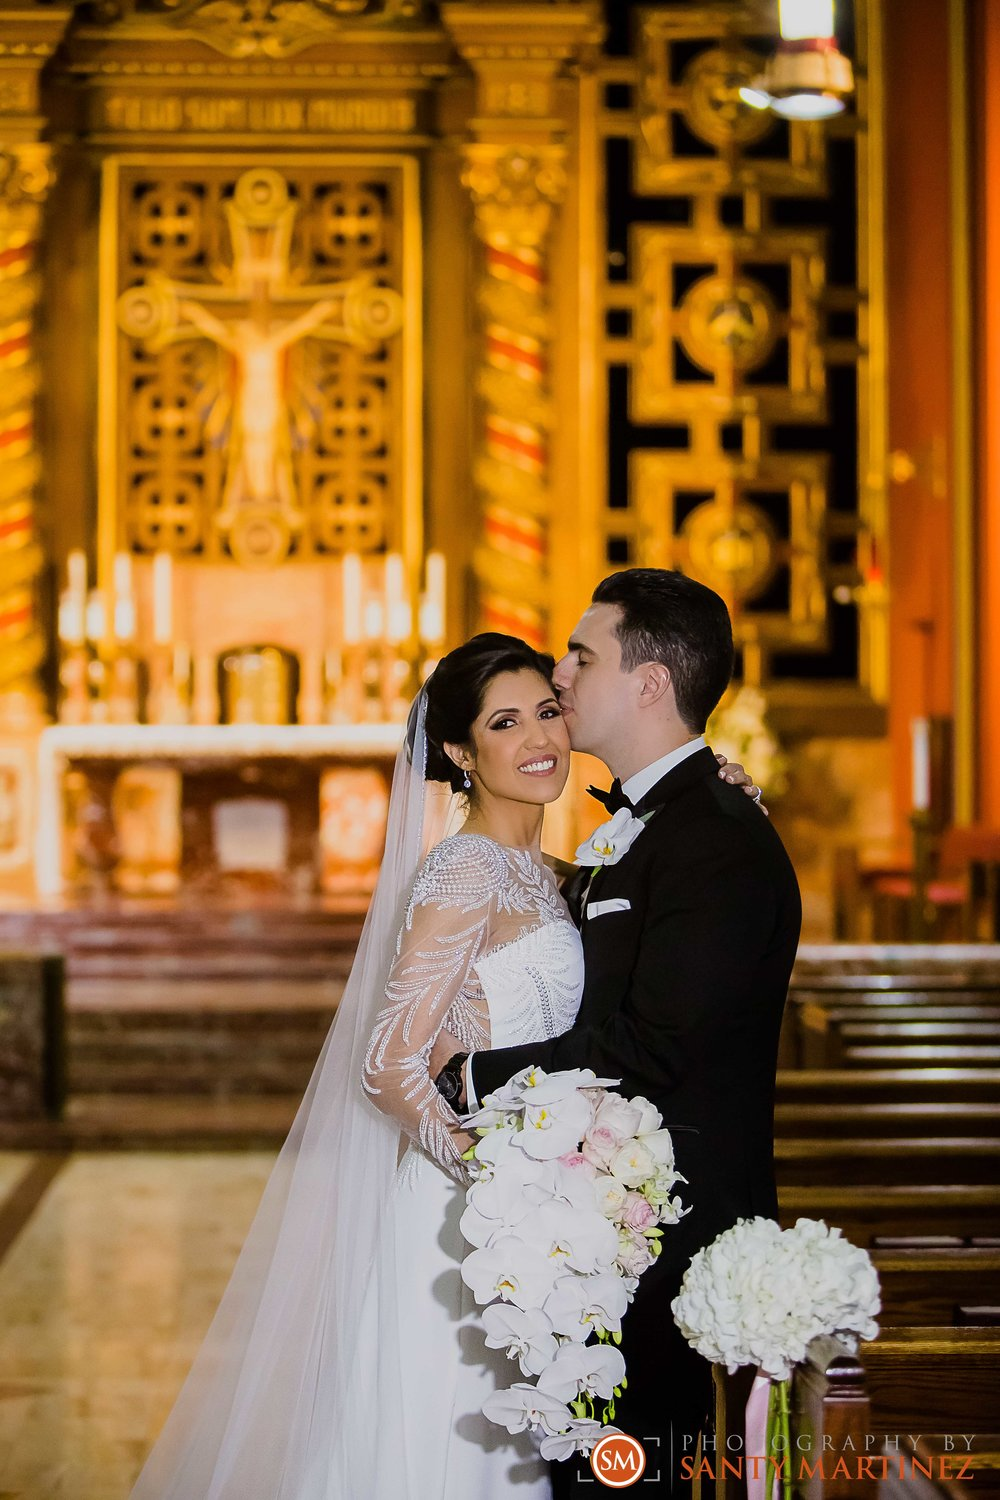 Wedding Trump National Doral Miami - Photography by Santy Martinez-18.jpg